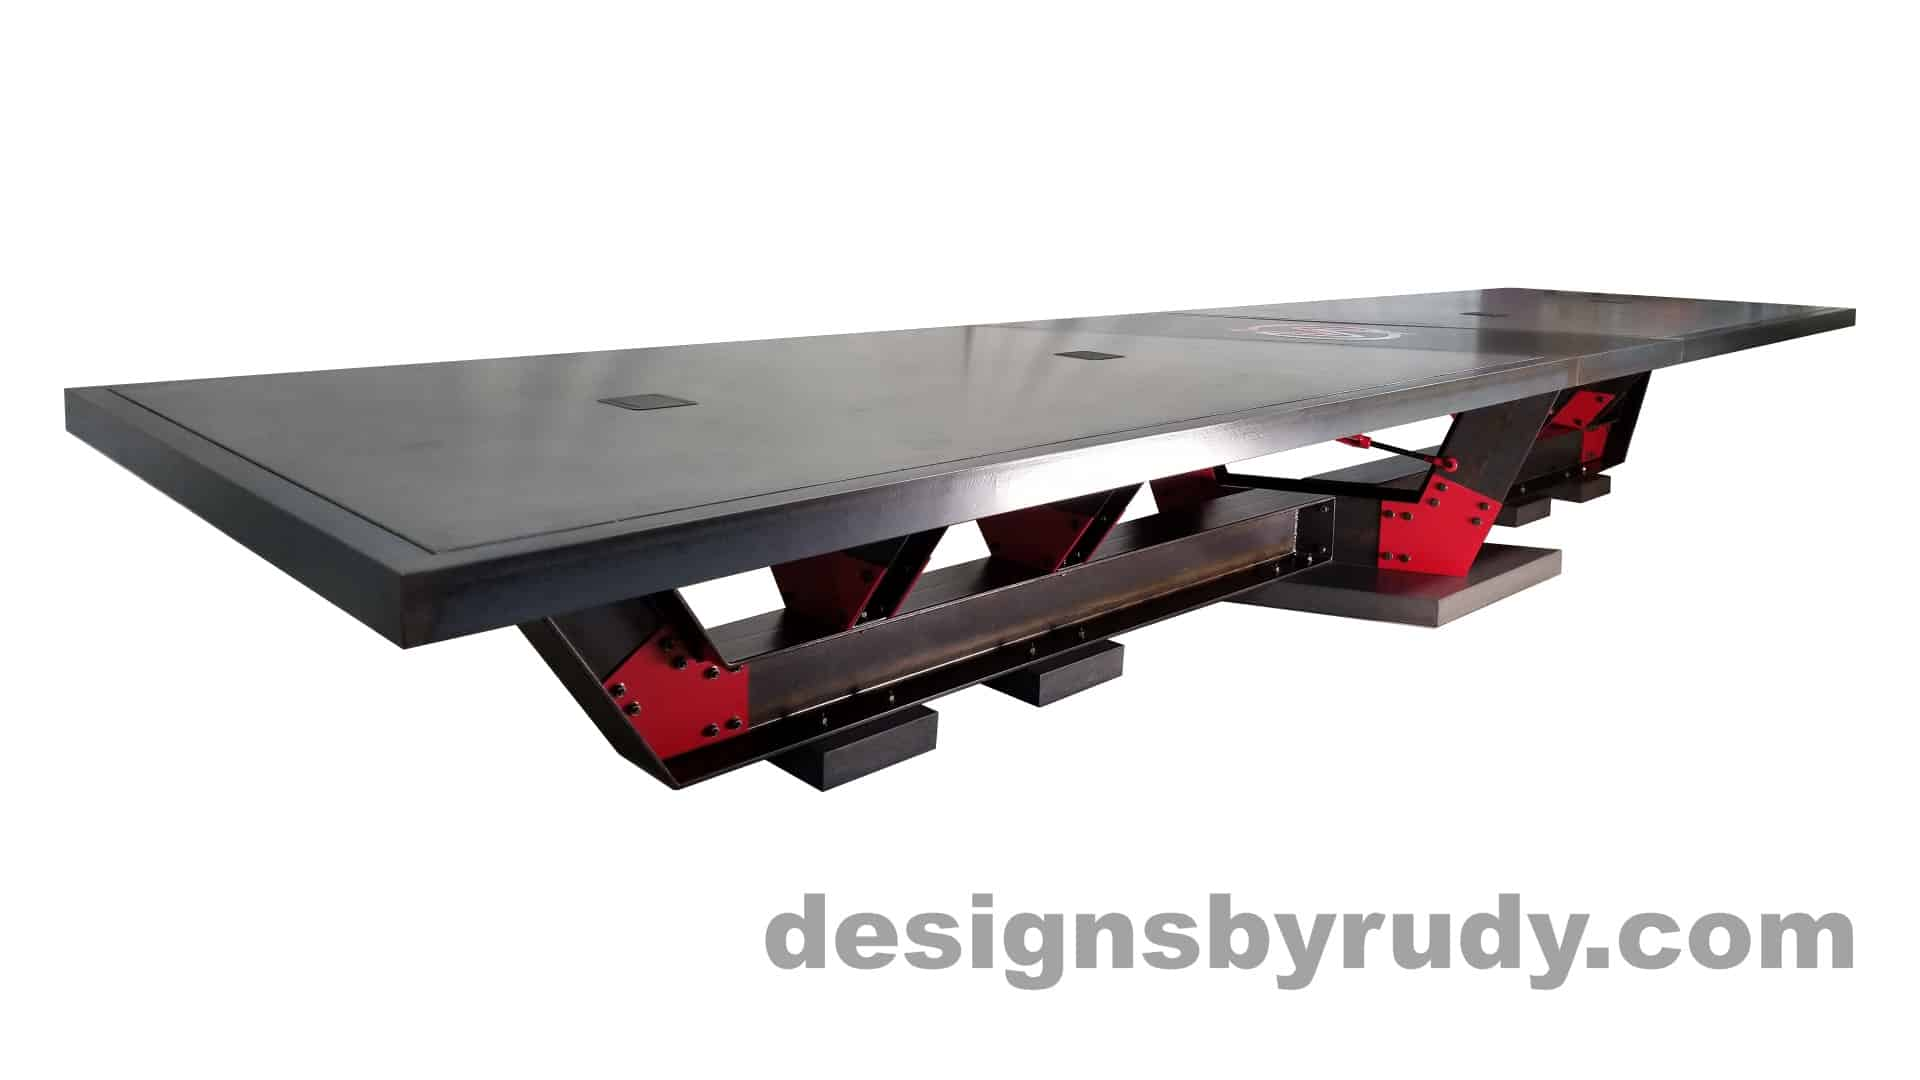 3 Steel and concrete conference table, design and fabrication by Designs by Rudy, angle 2 view